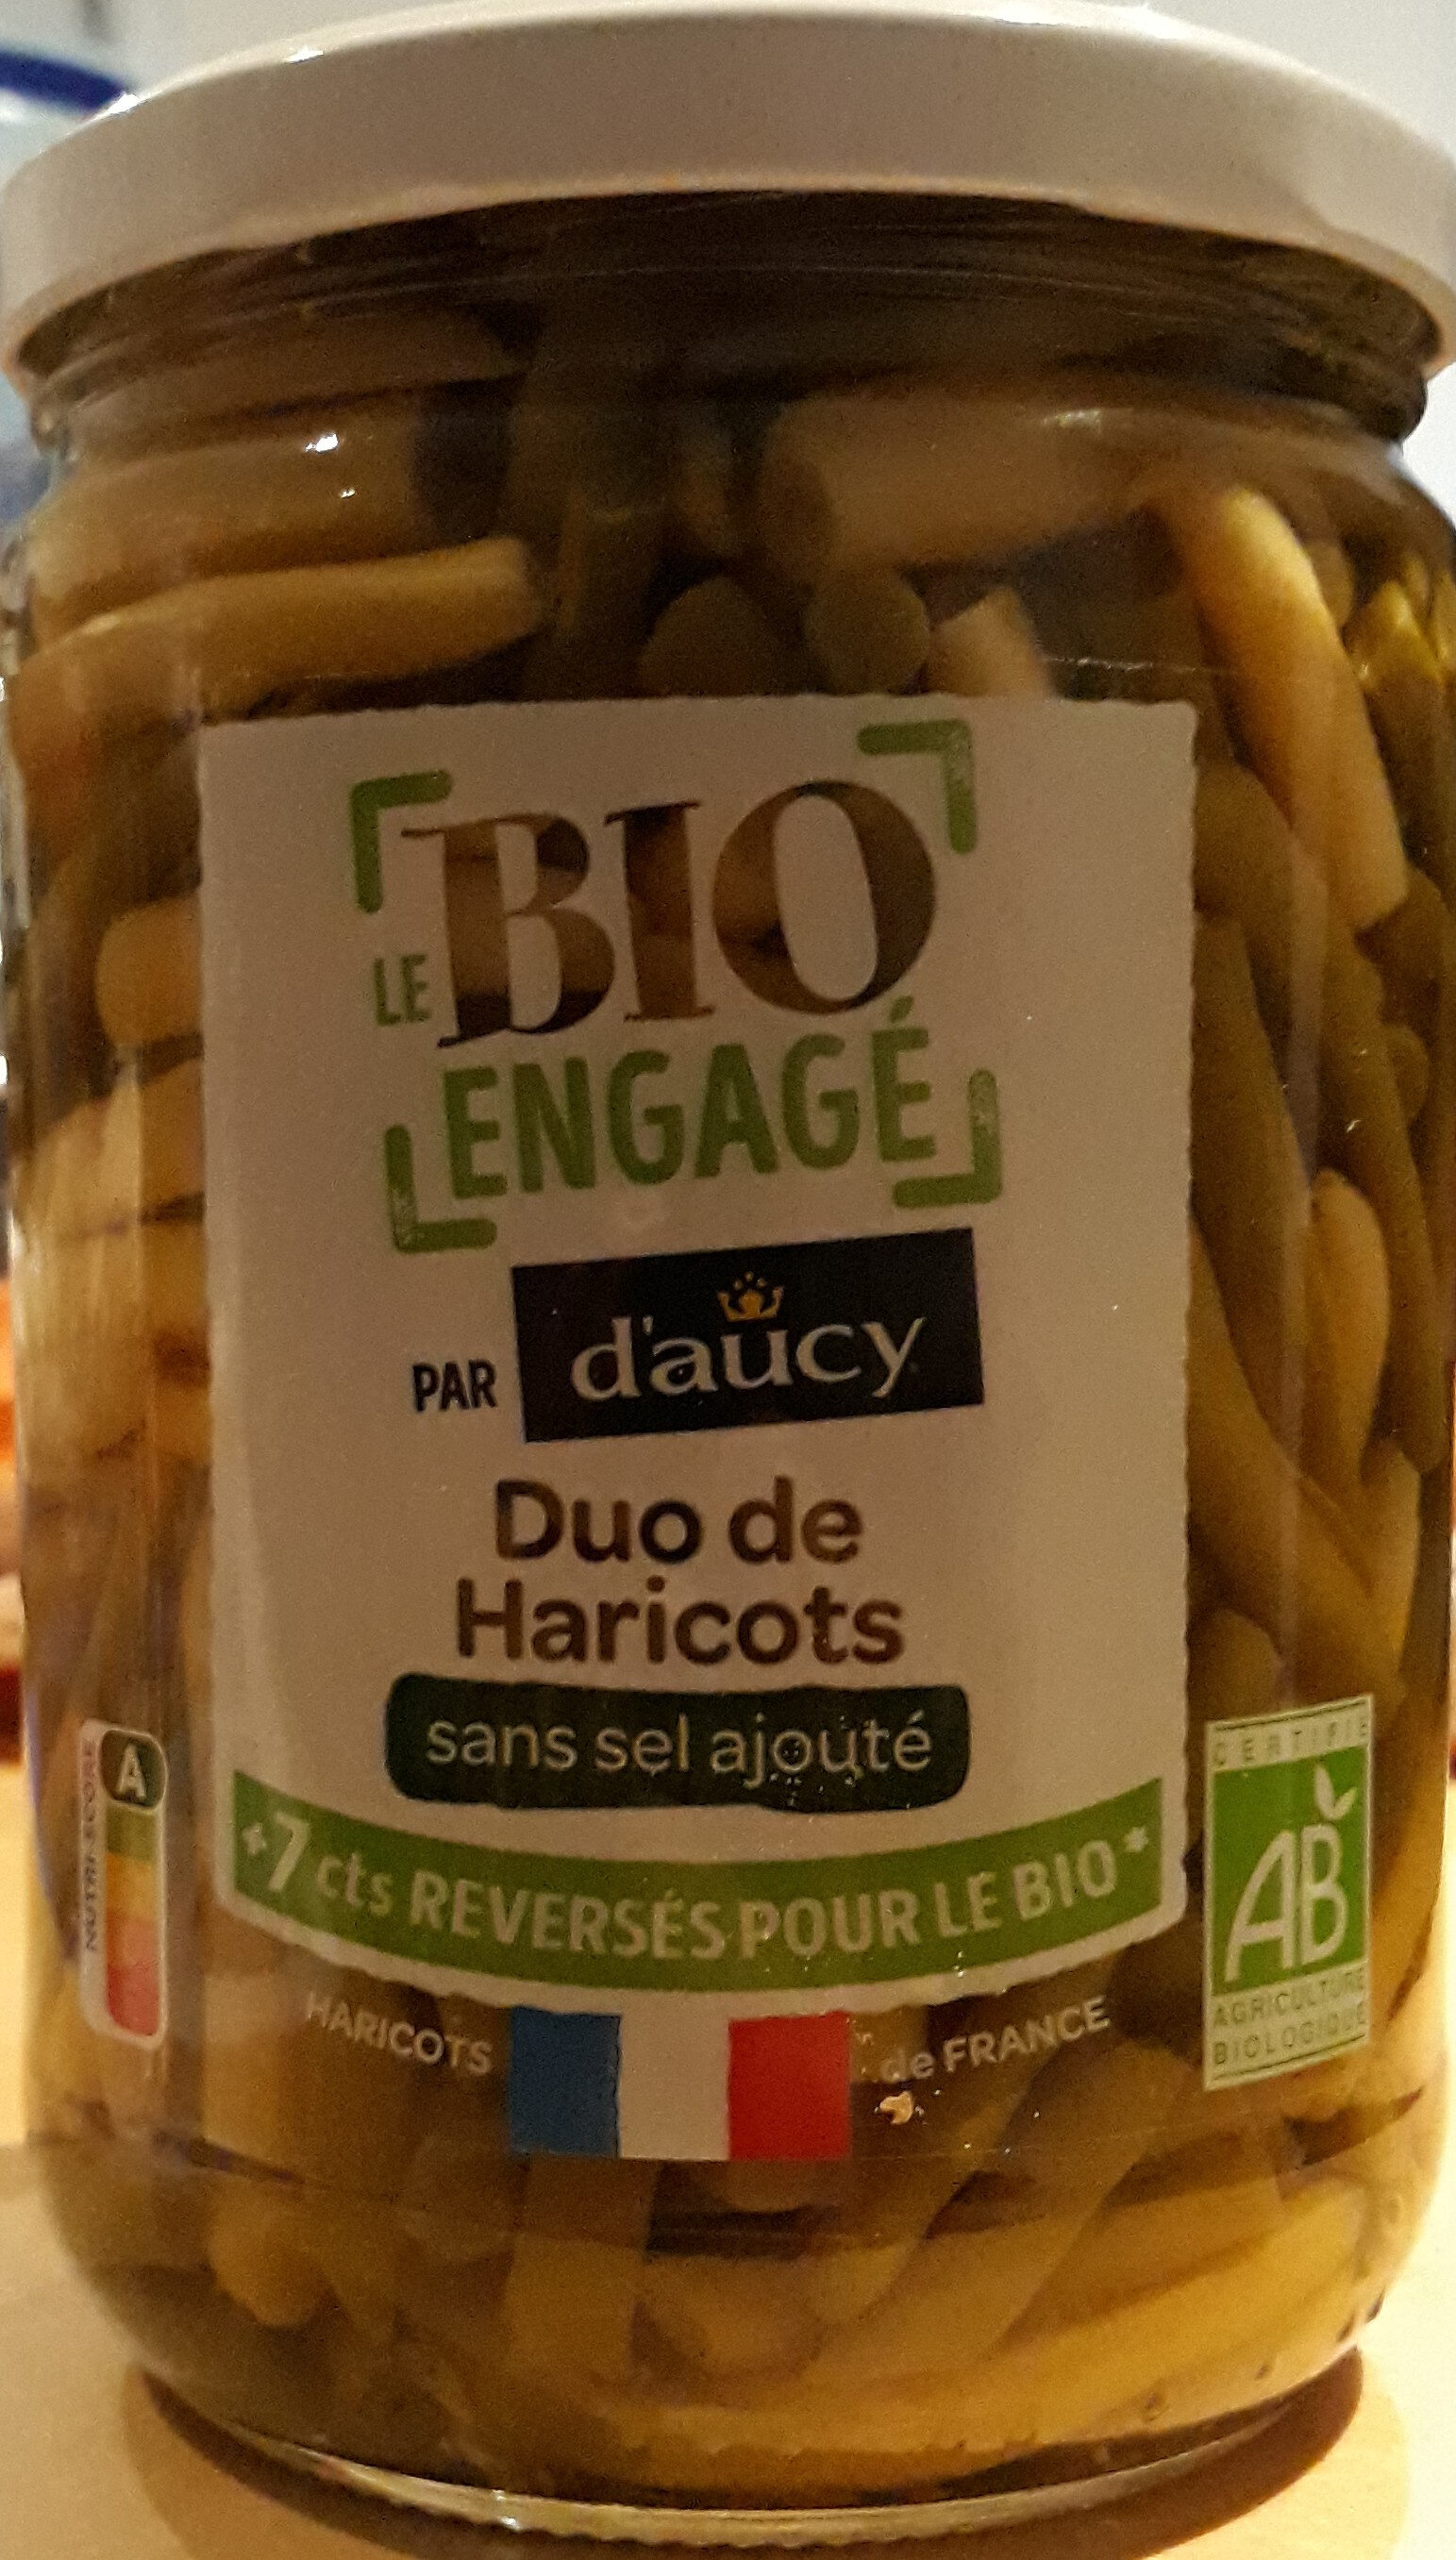 Duo de haricots - Product